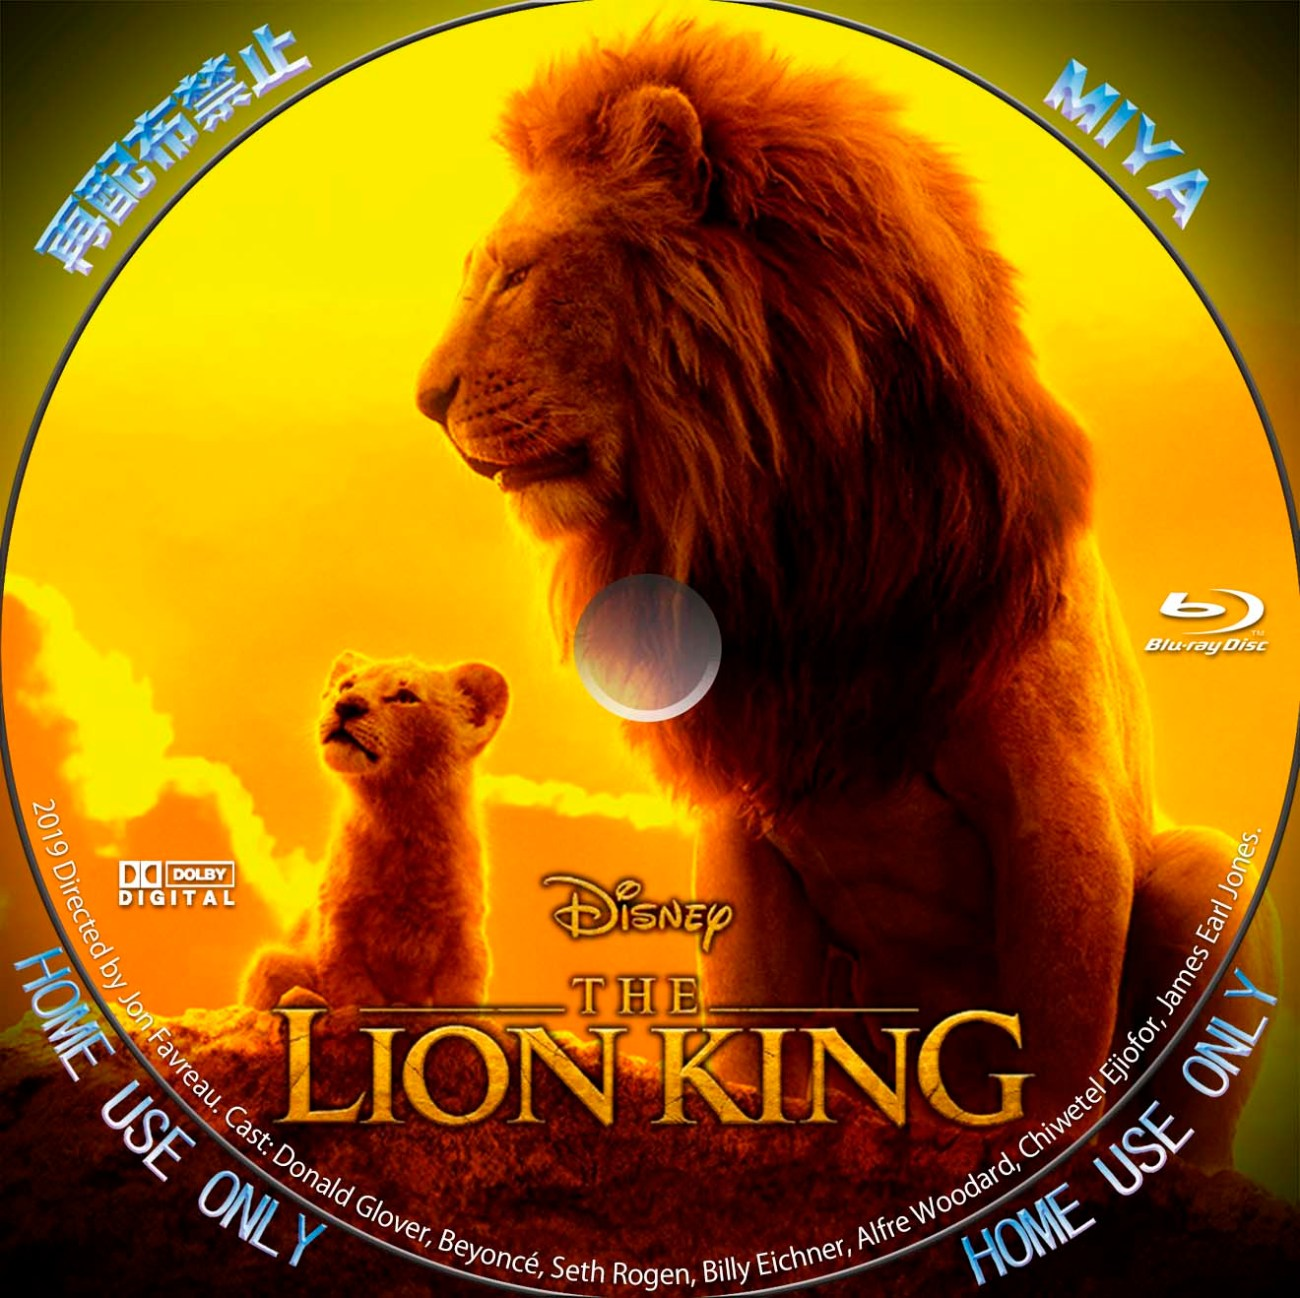 The Lion King Blu-ray Label